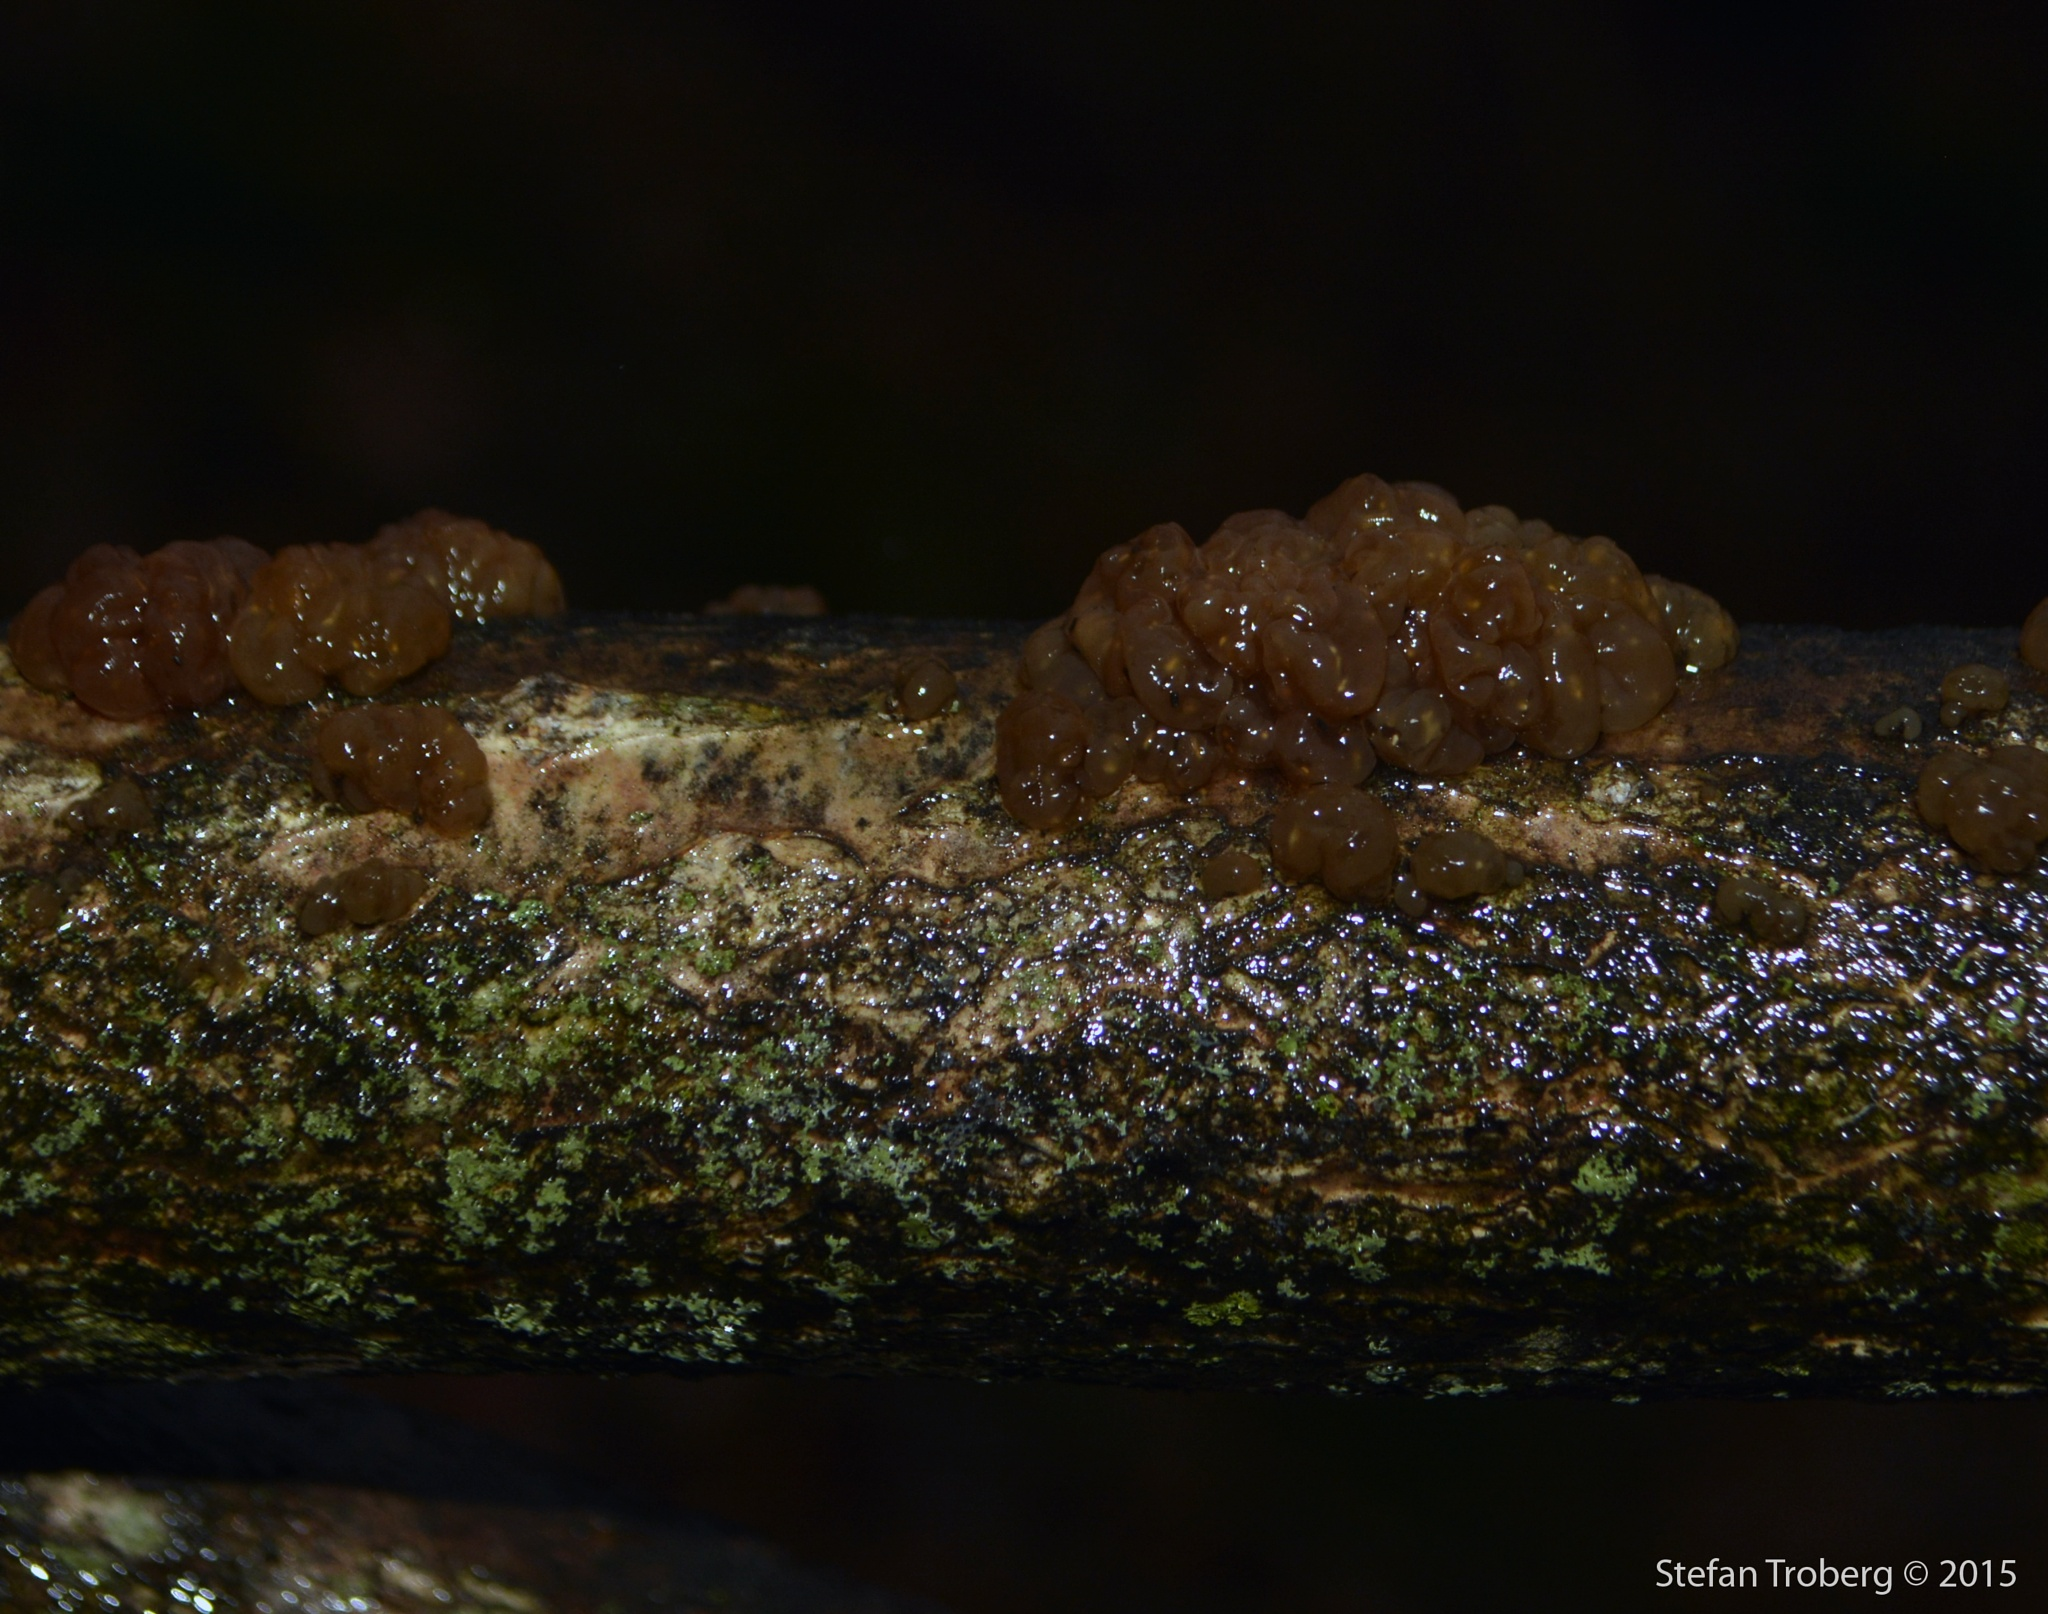 Fungi still growing in December night full of rain by Stefan Troberg